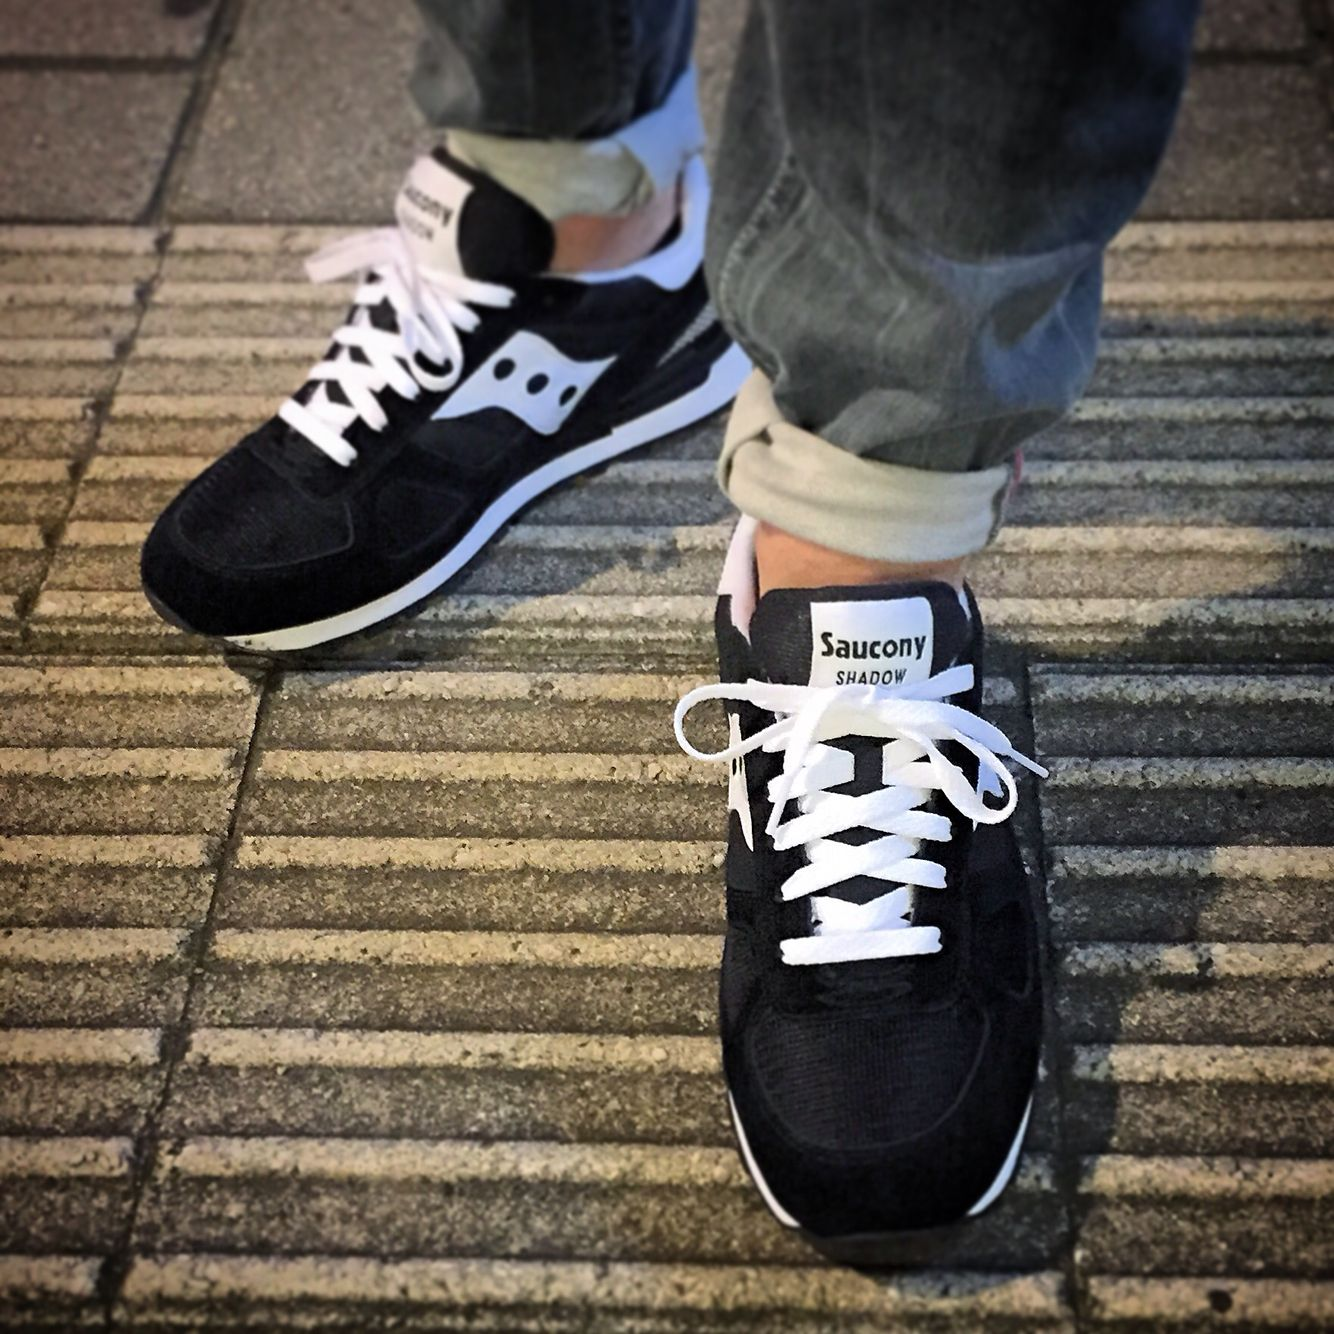 533dc0552b47 Saucony Shadow Original BLK. Swapped the black laces for white ones ...